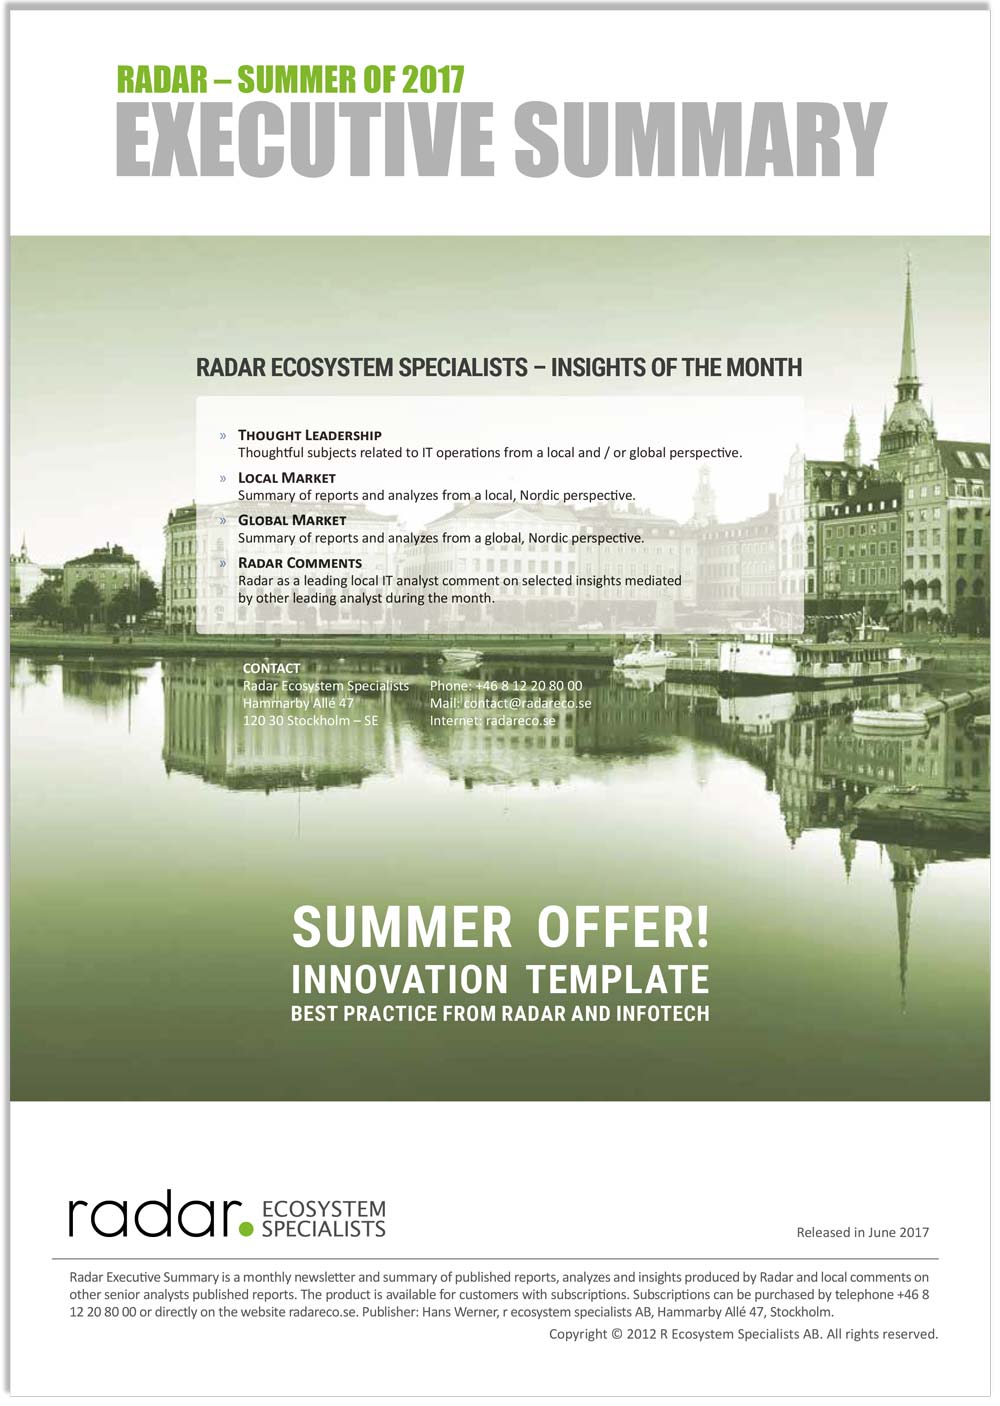 Radar Executive Summary - Summer edition free of charge